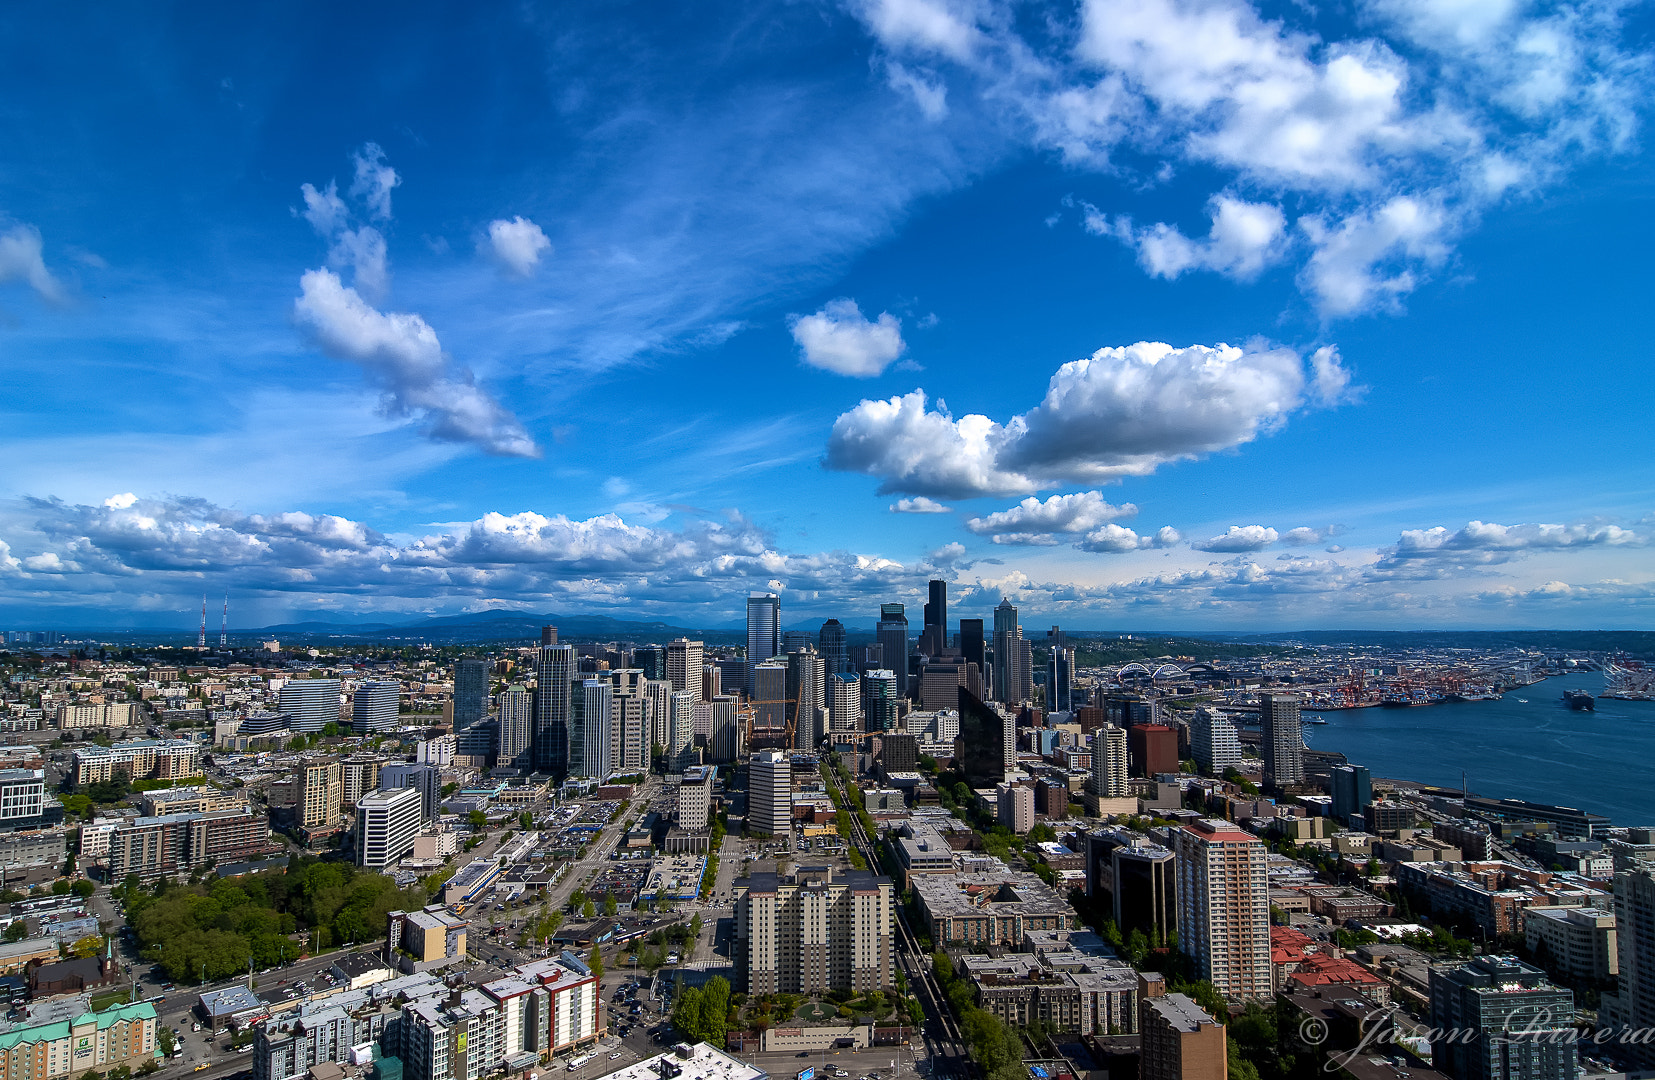 Photograph Seattle From the Air by Jason Rivera on 500px